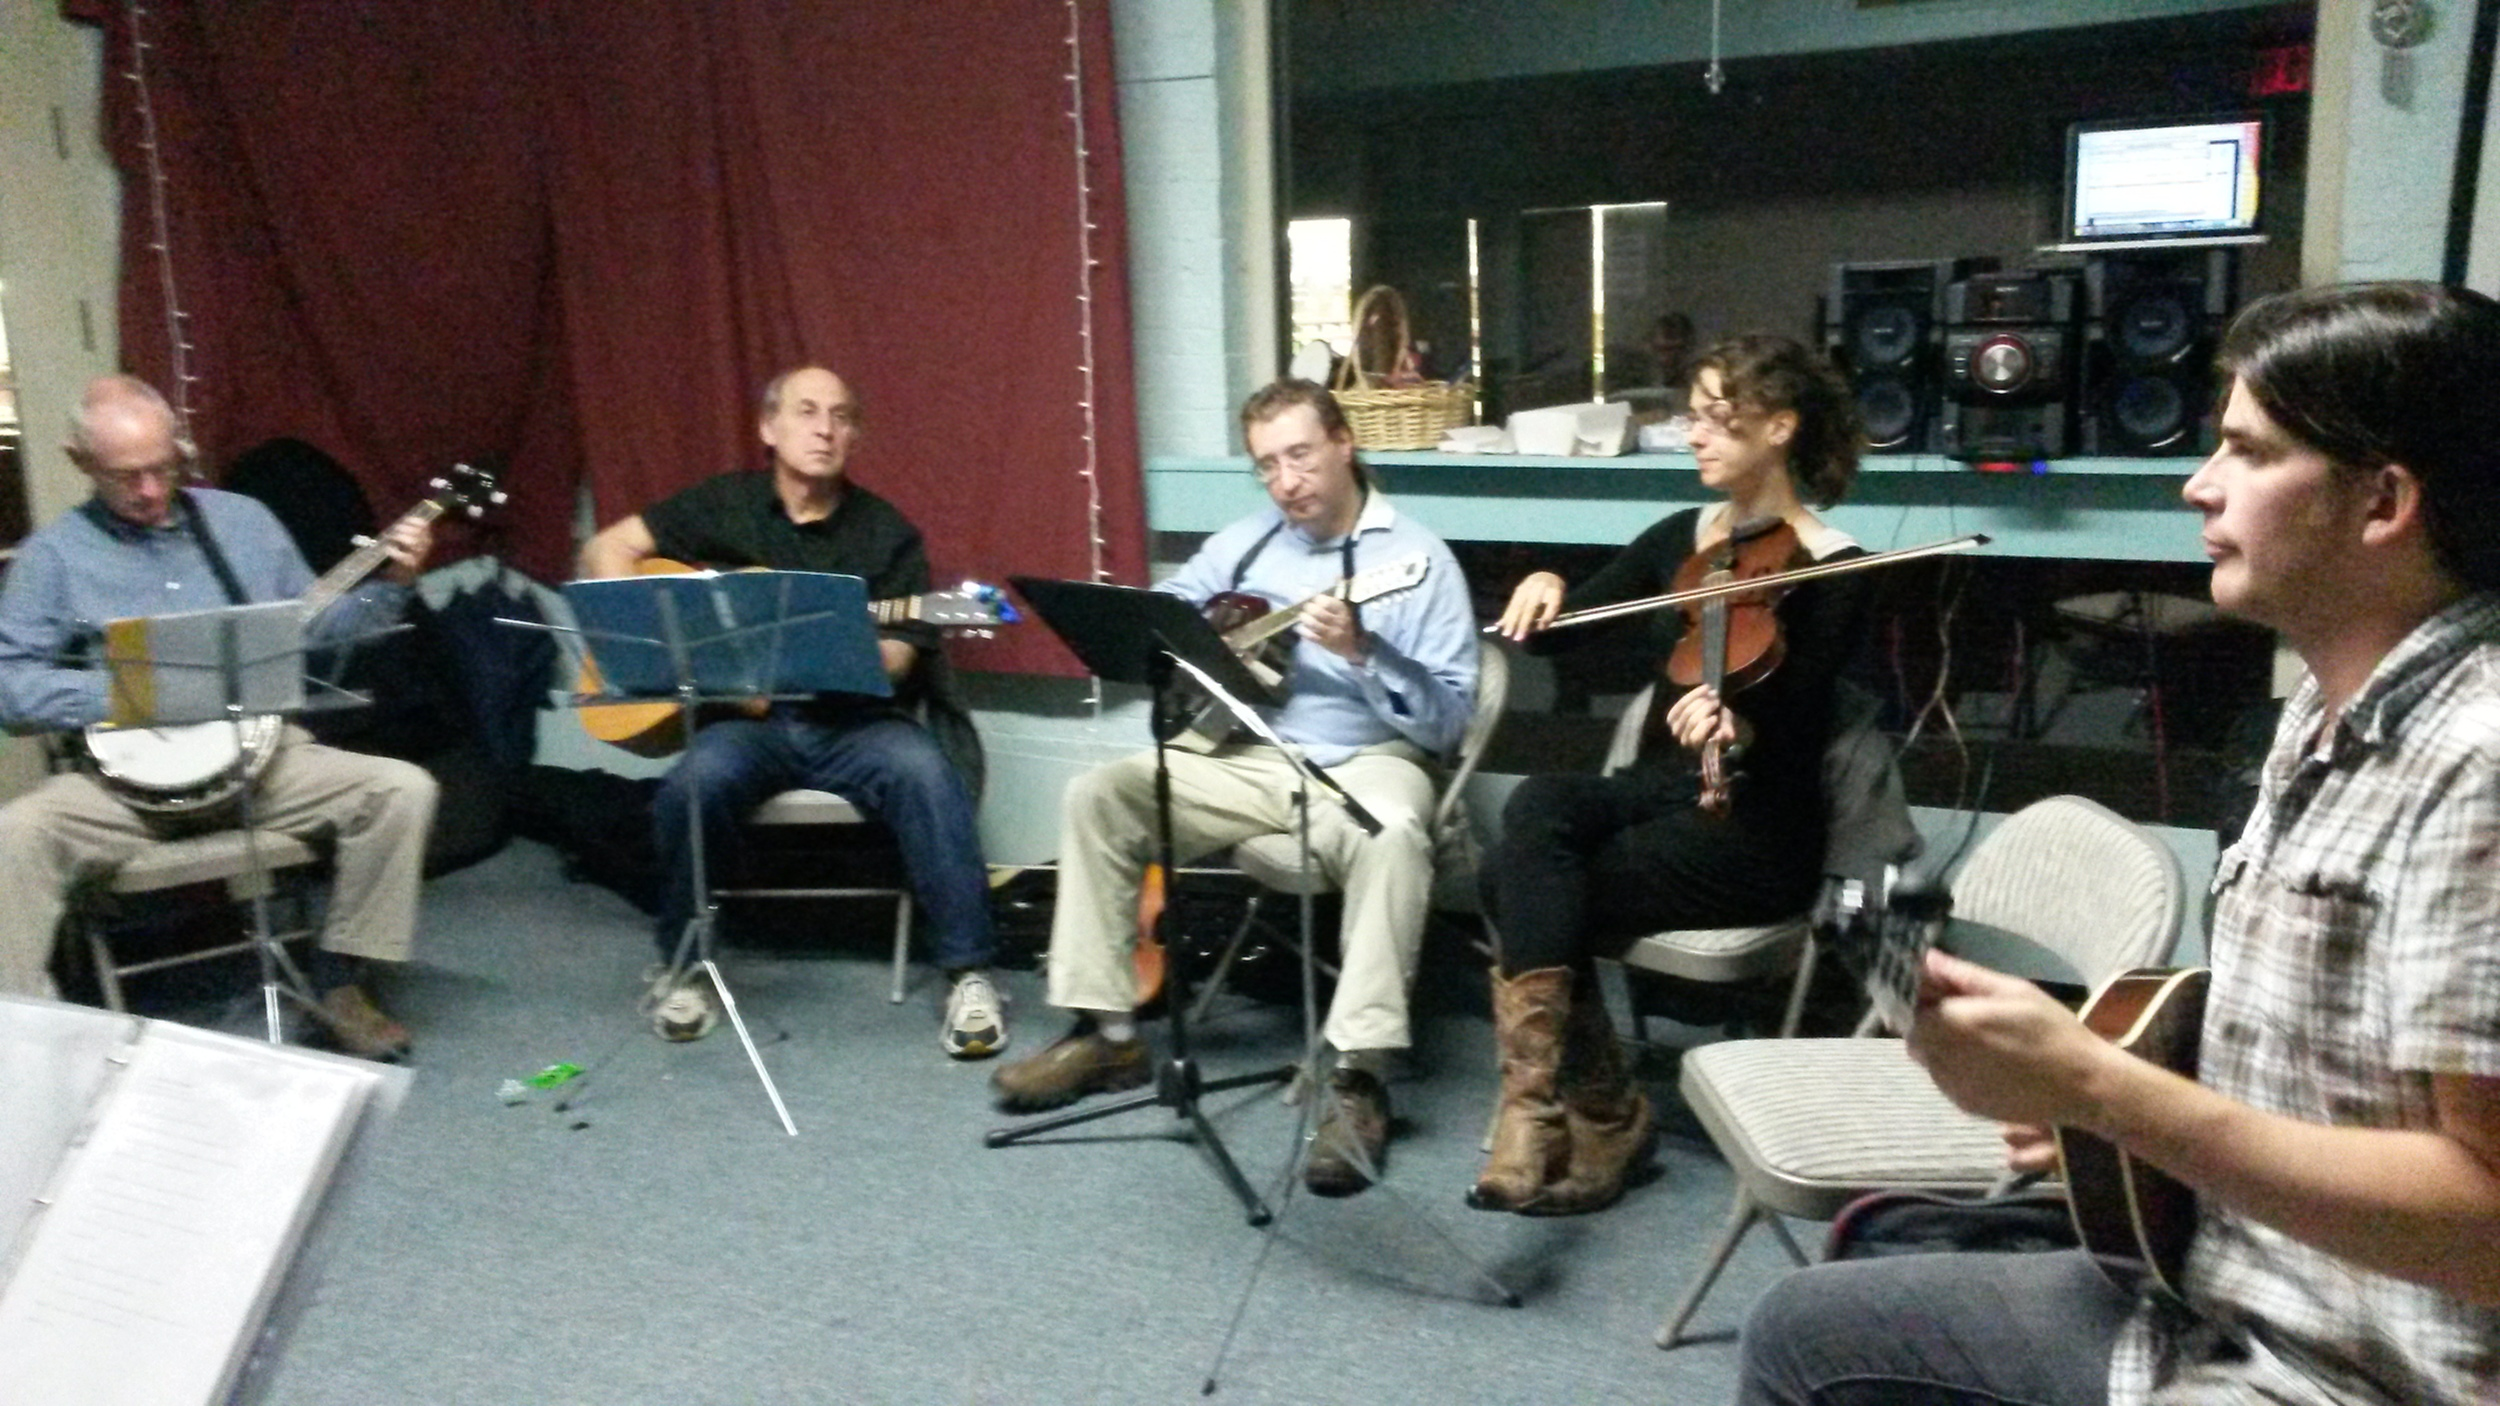 Leading an ensemble at the Passim School of Music in Cambridge, MA. Photo Credit: Hannah Baker